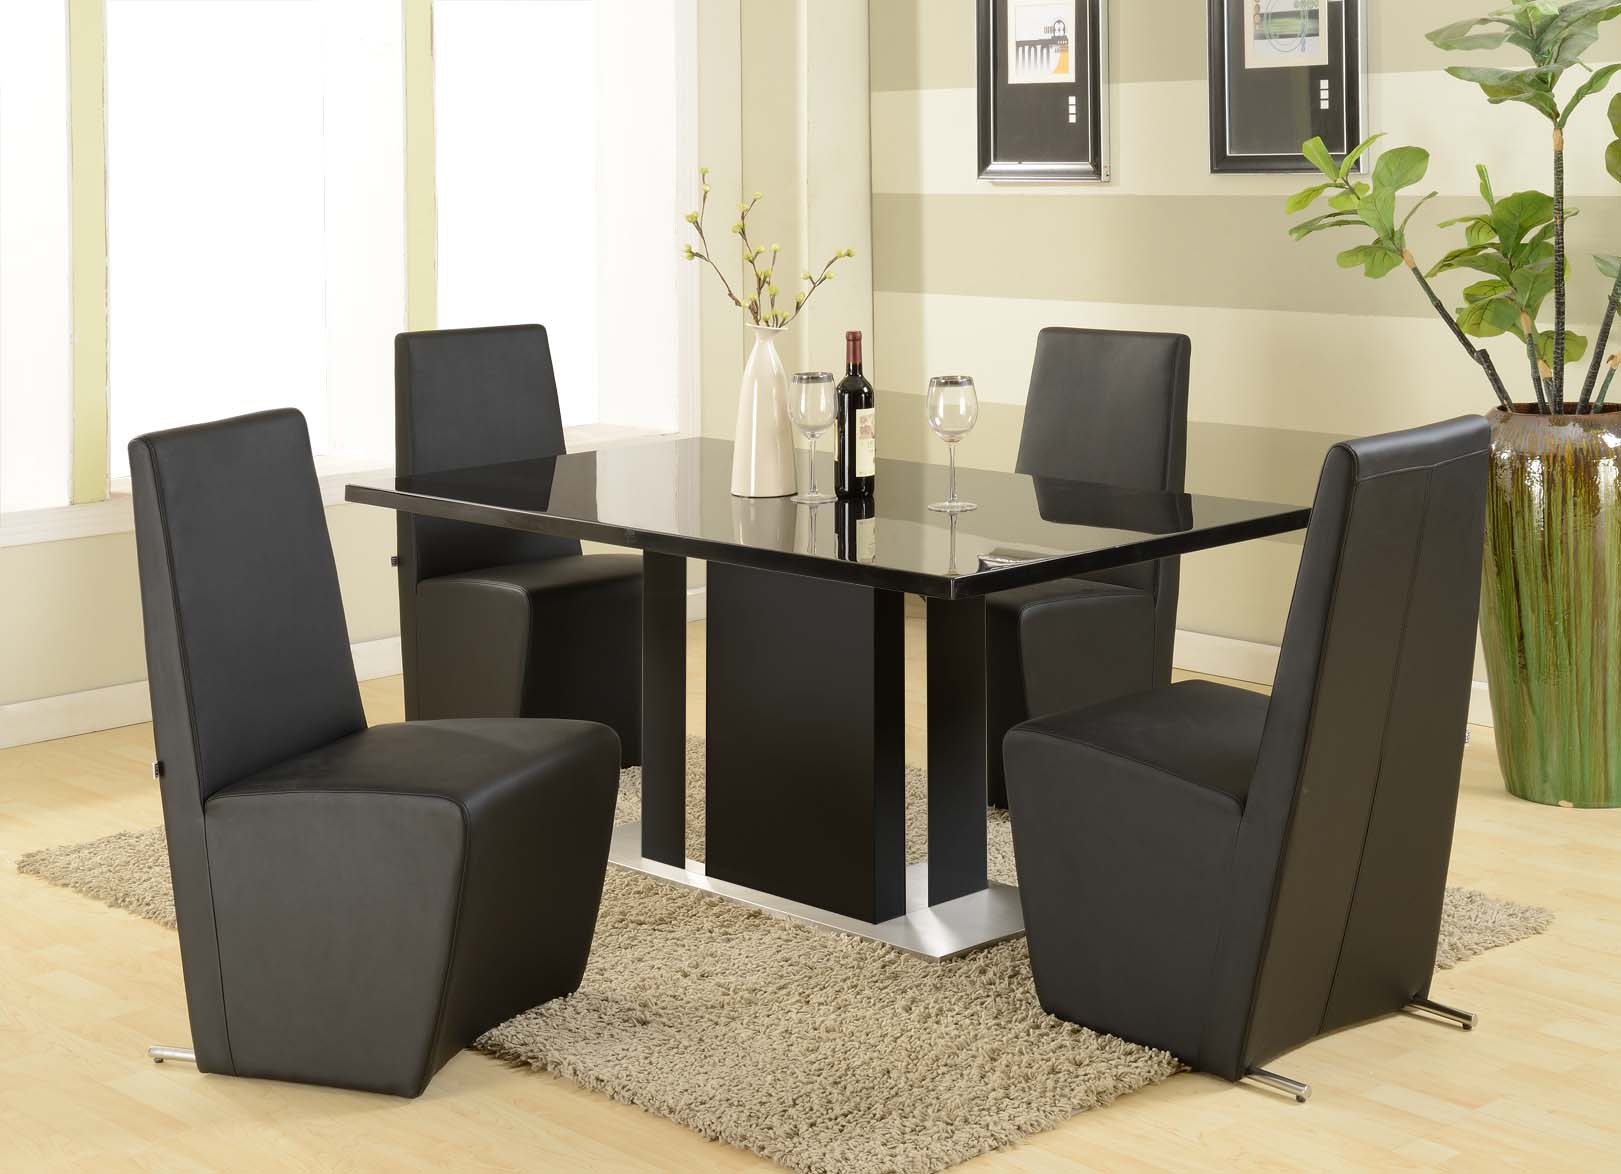 Modern furniture table home design roosa Dining set design ideas